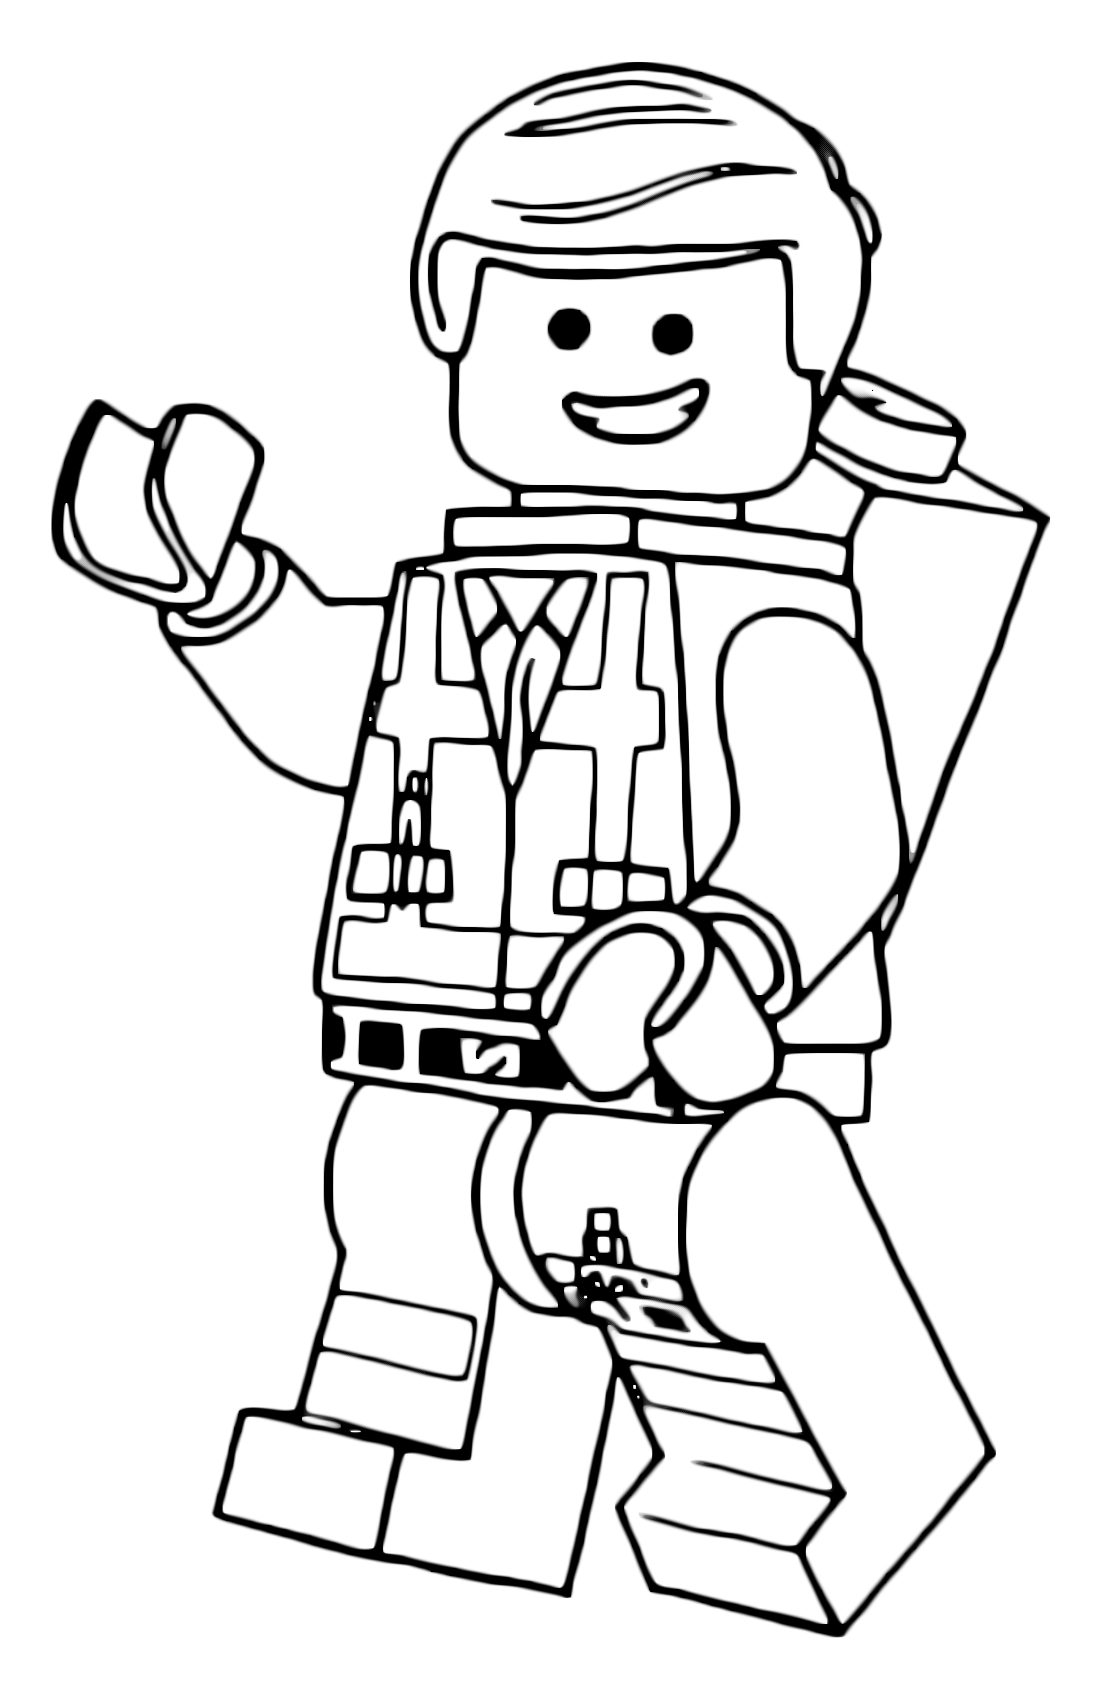 lego coloring sheets free free printable lego coloring pages for kids cool2bkids free coloring lego sheets